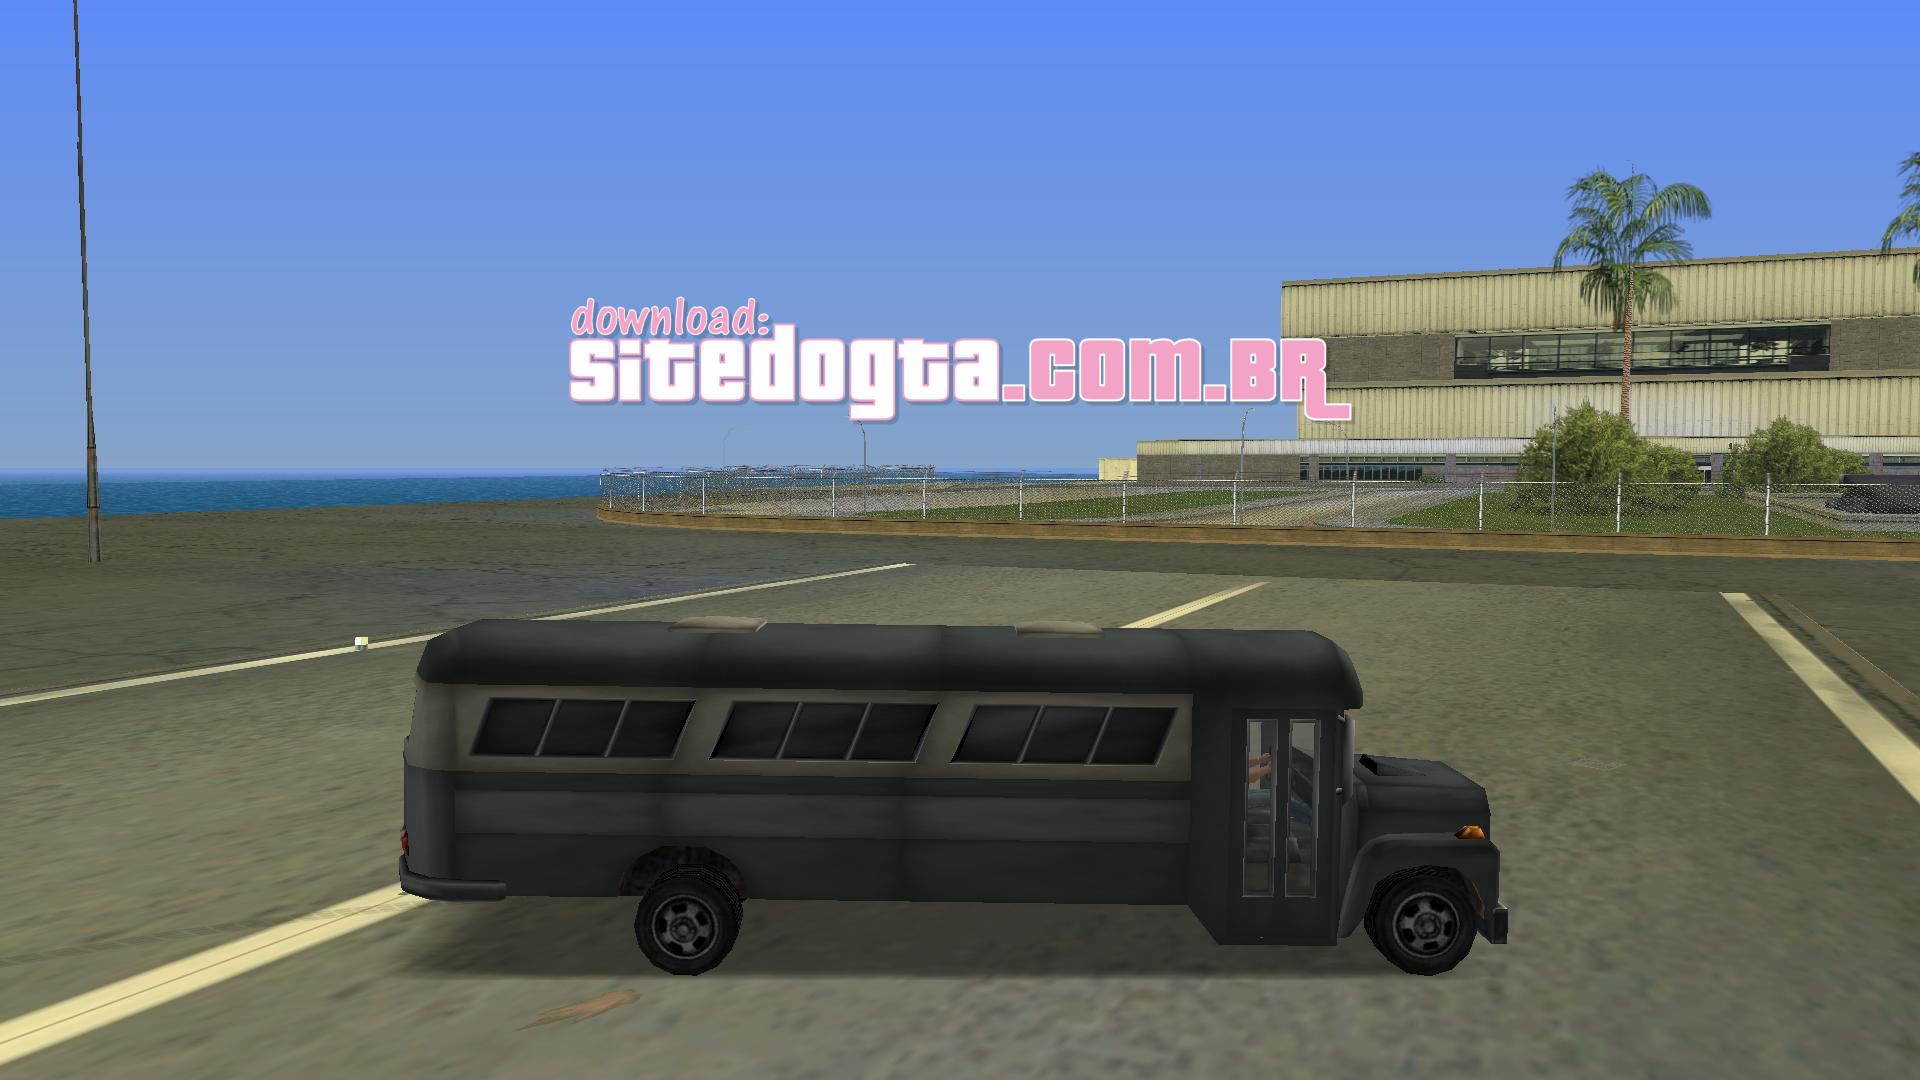 Index of /vice-city/imagens/veiculos/backup/Bus